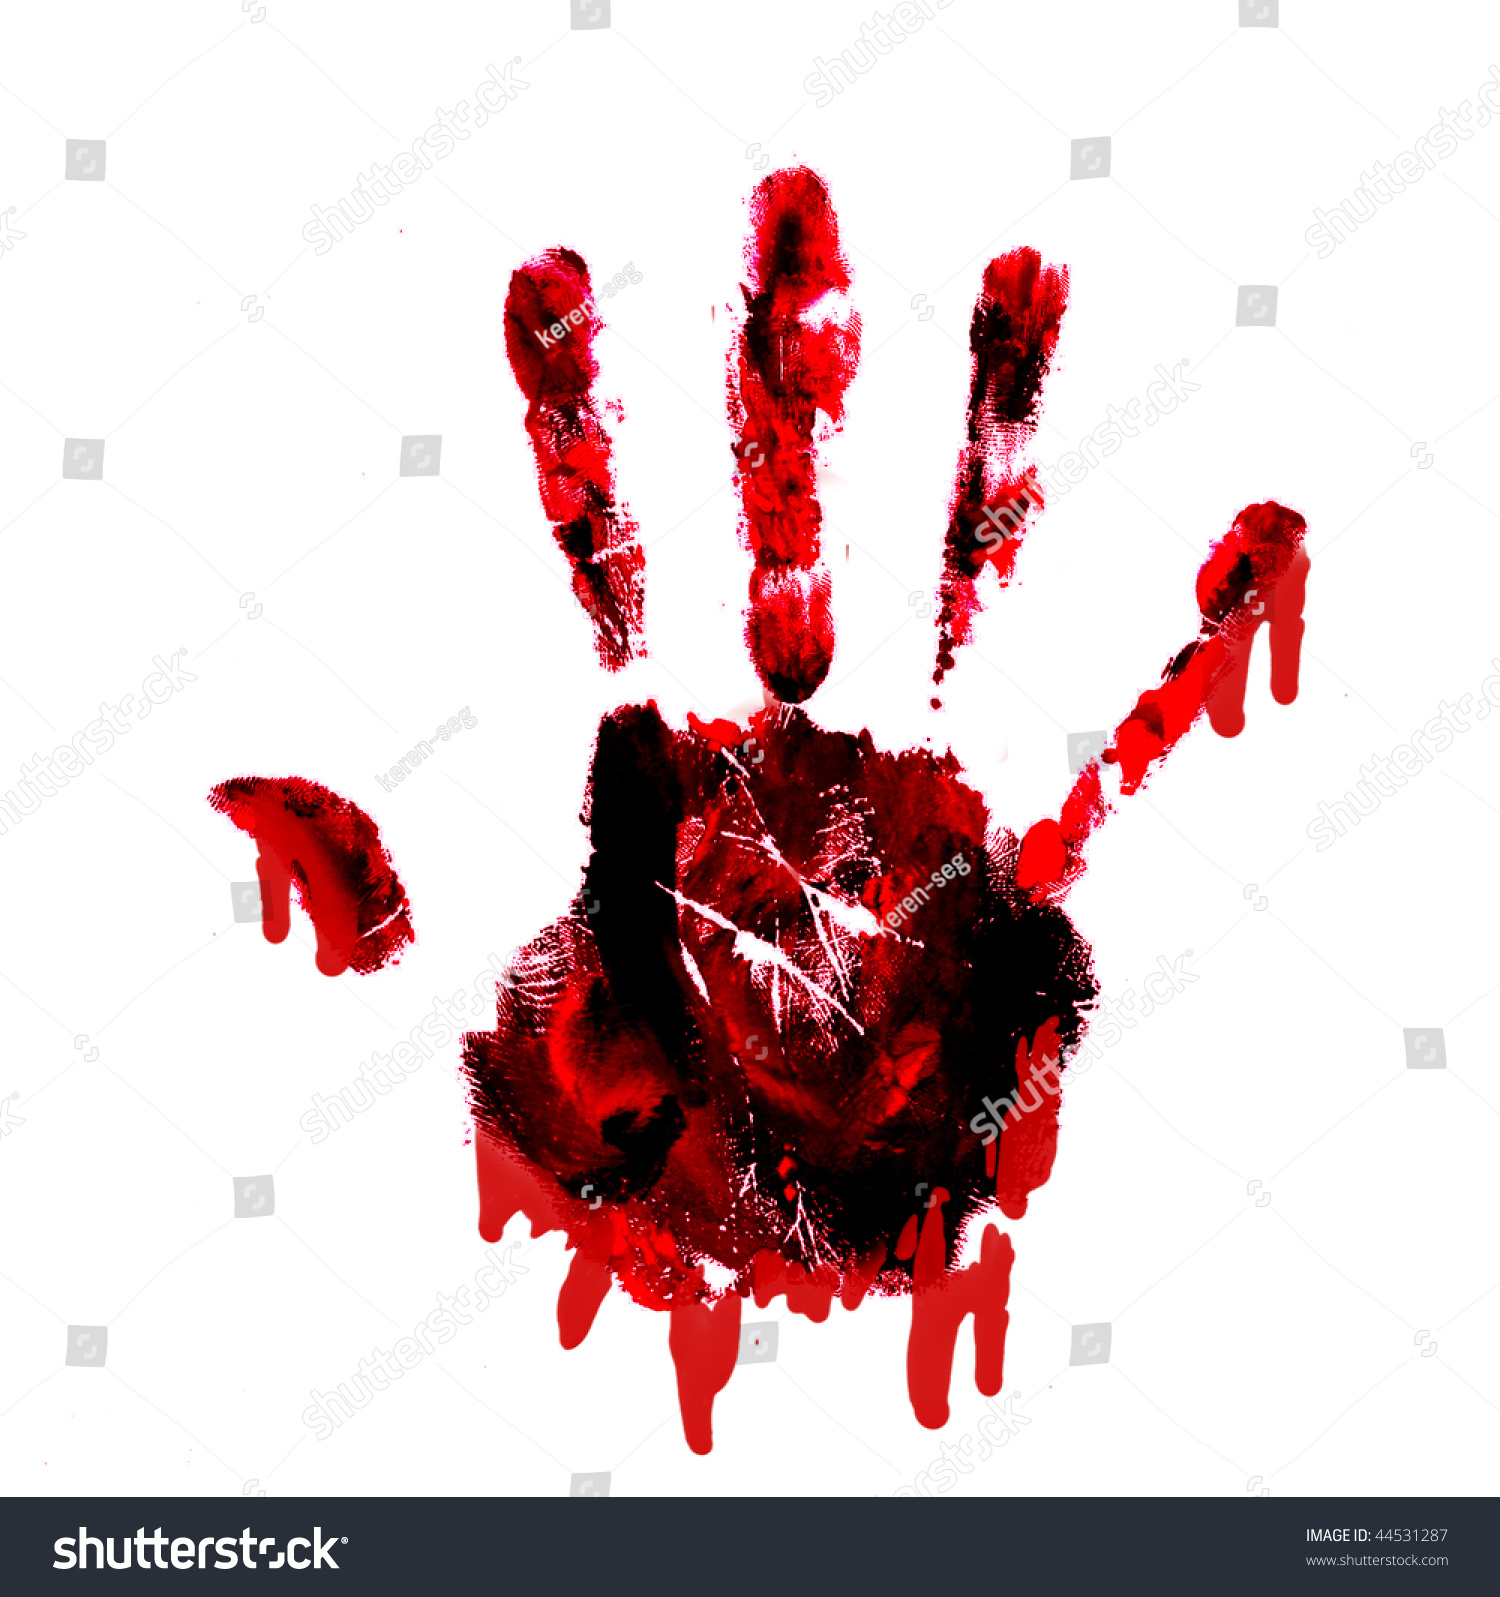 bloody handprint with drips isolated on white background